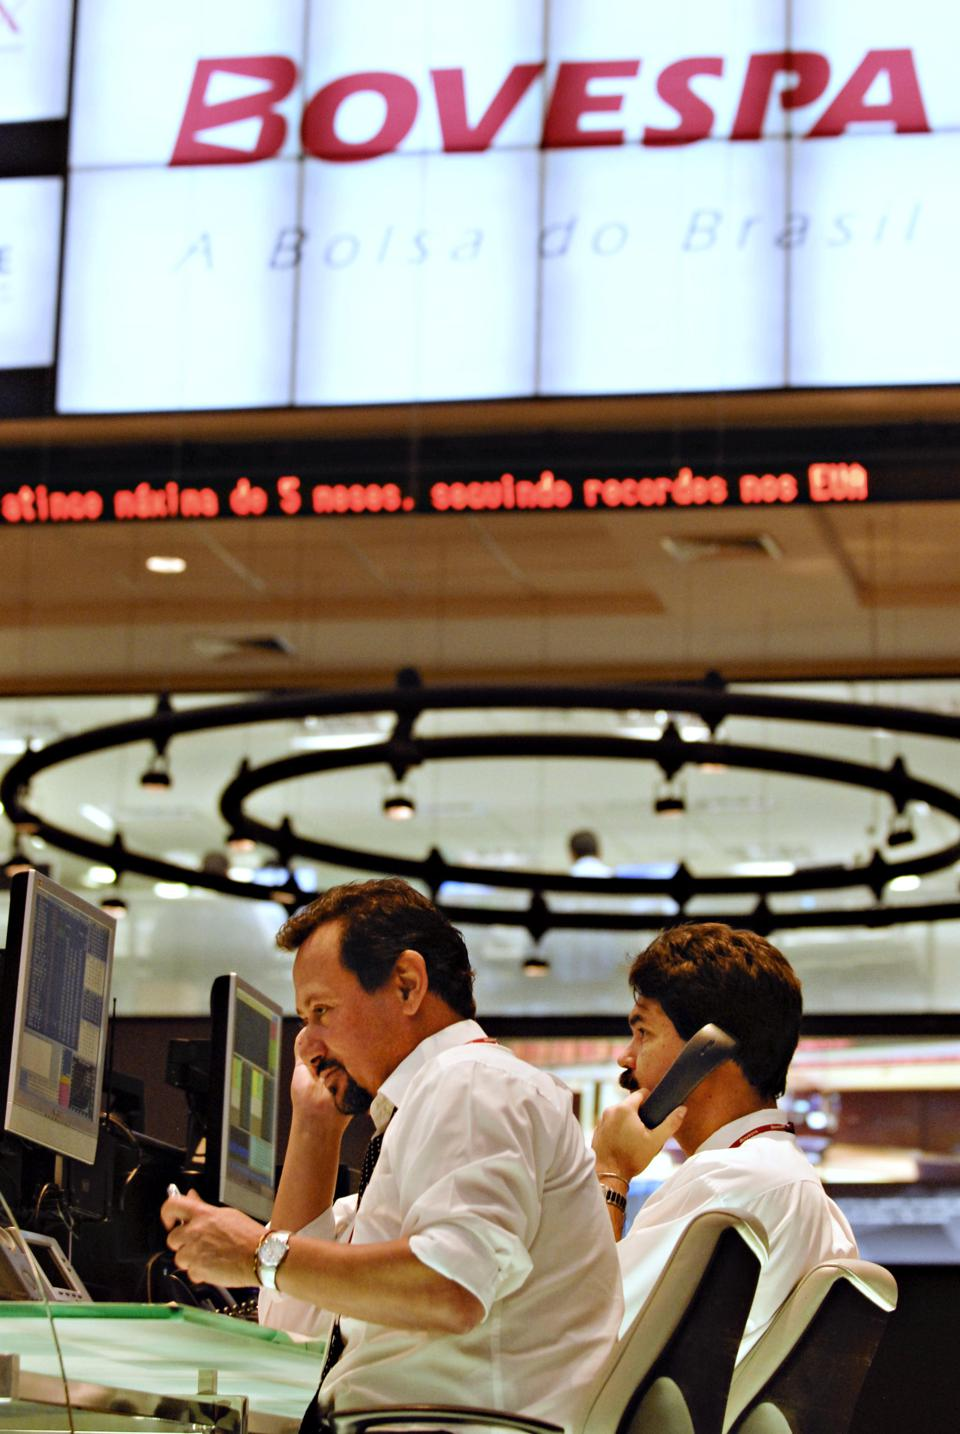 Traders work on the Espa ço Bovespa ( Bovespa Space ) floor at Bovespa Stock Exchange in Sao Paulo, Brazil, Friday February 8th , 2008